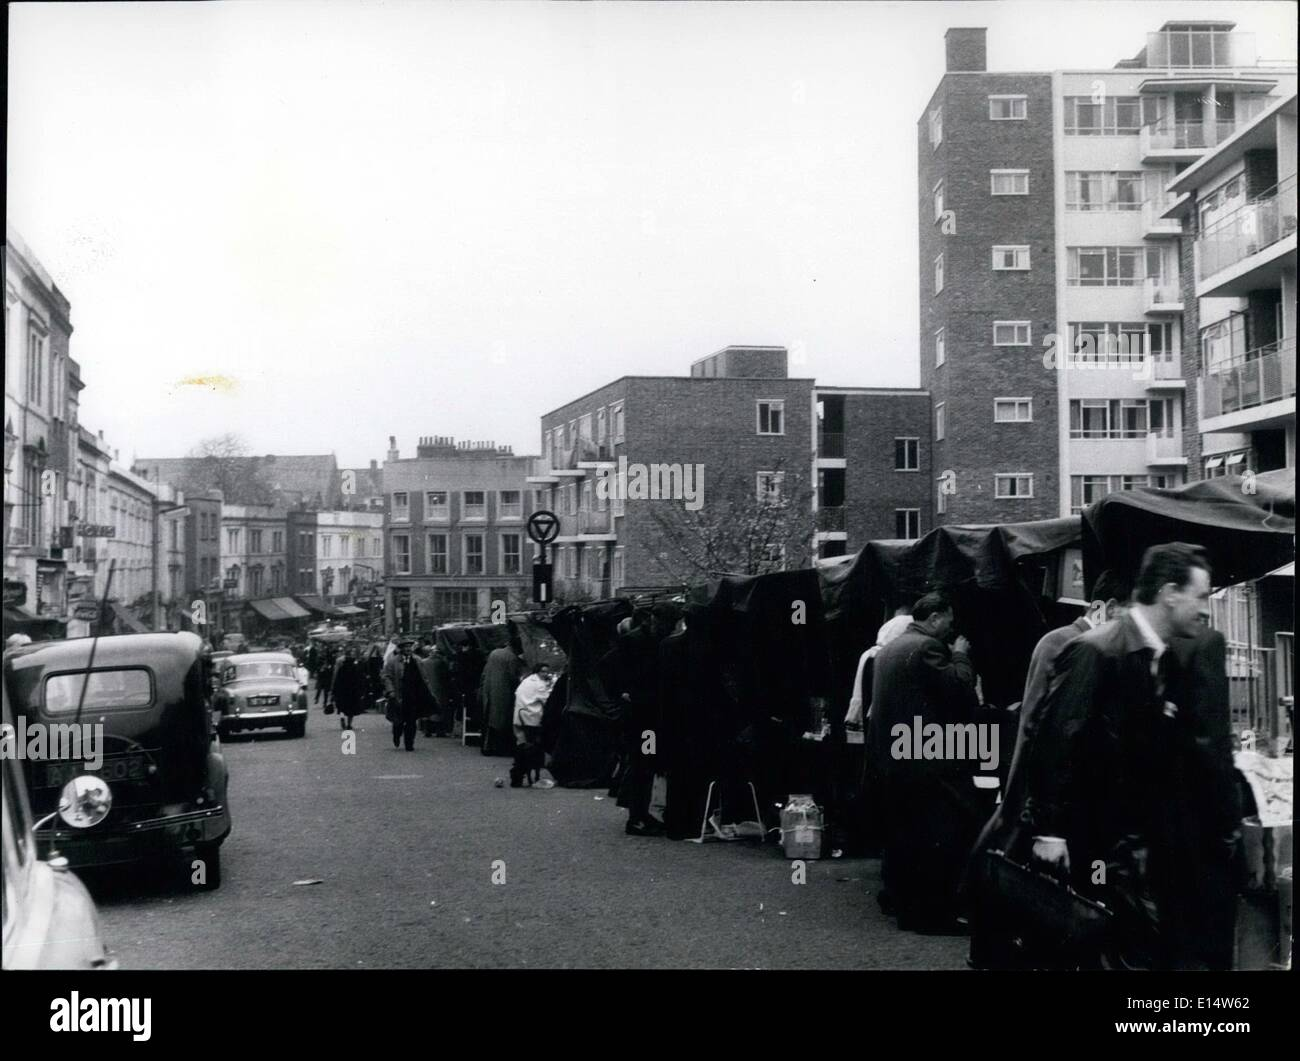 Apr. 18, 2012 - Long view of the Portobello Rd with covered stalls on the right shops to the left and new flats towering above all. - Stock Image